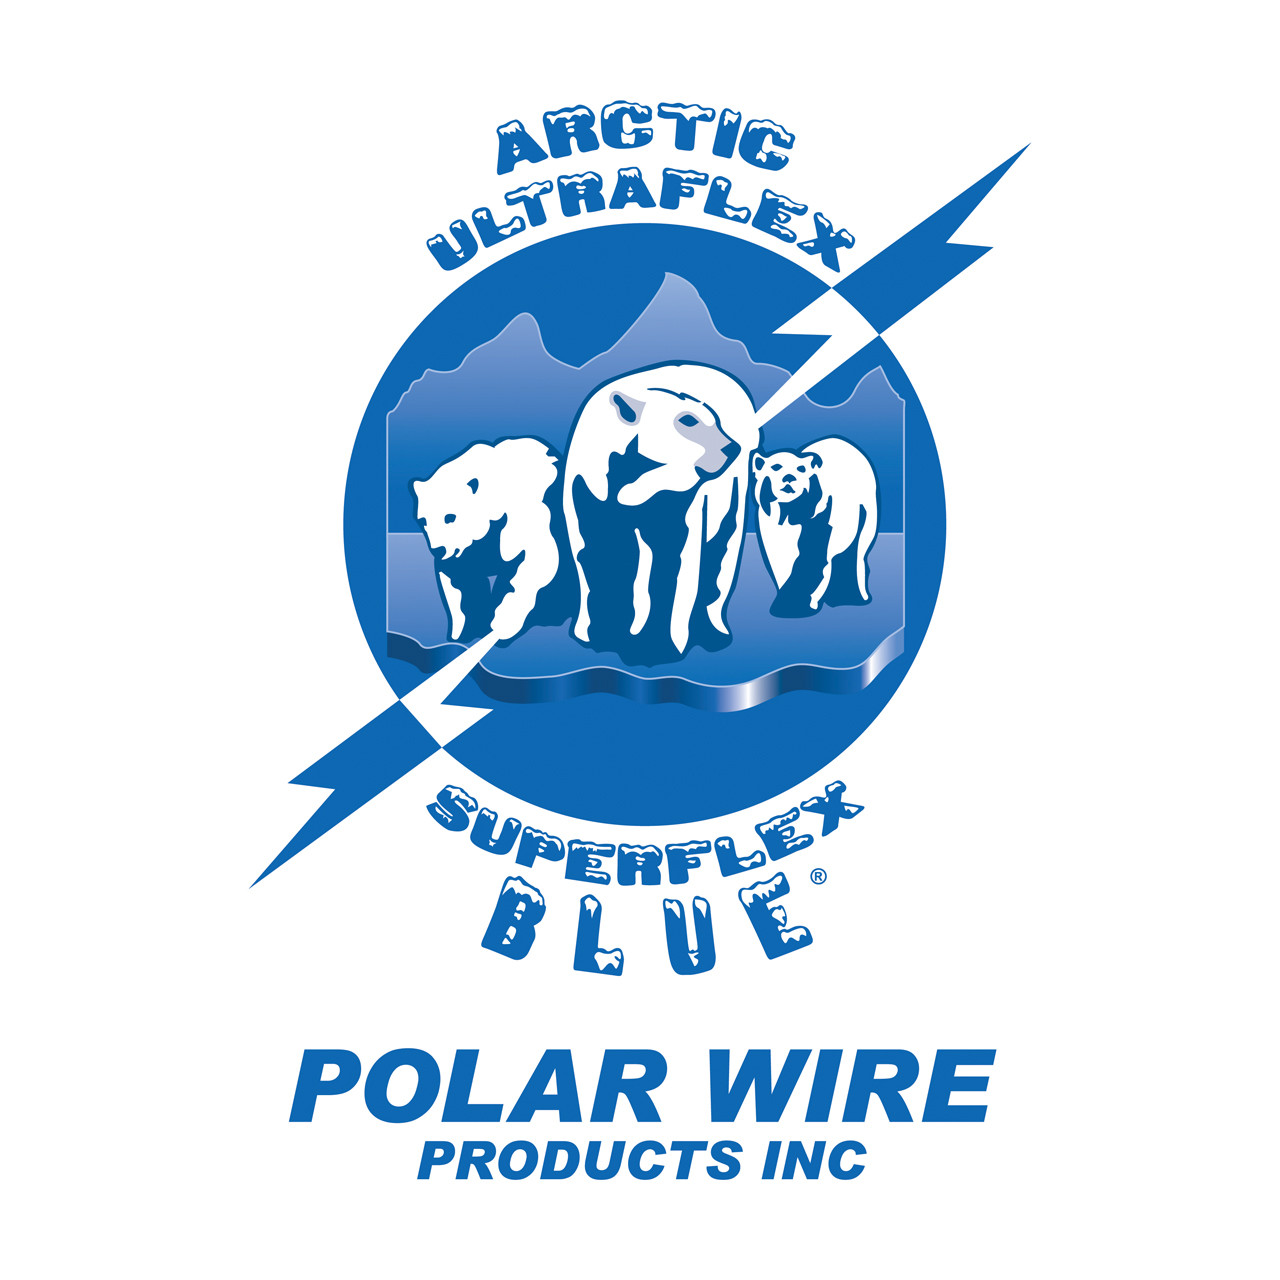 Arctic Ultraflex Blue® 1/0 gauge wire is is constructed with 1064/30 Class K fine stranding for ultra flexibility and superior conductivity